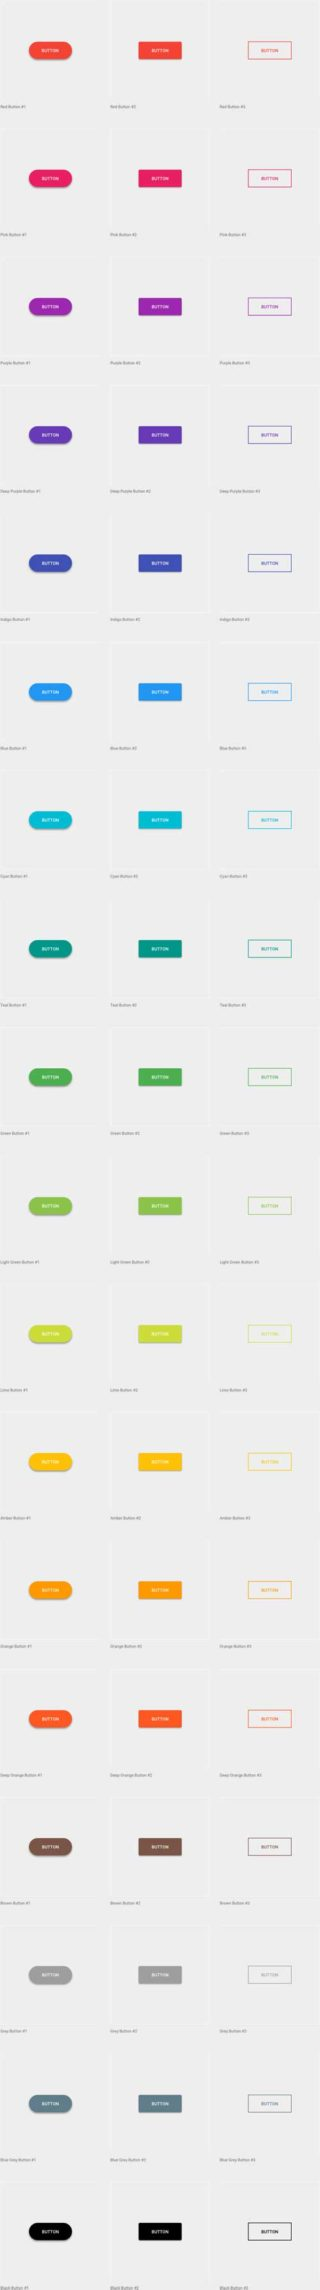 divi buttons layout pack